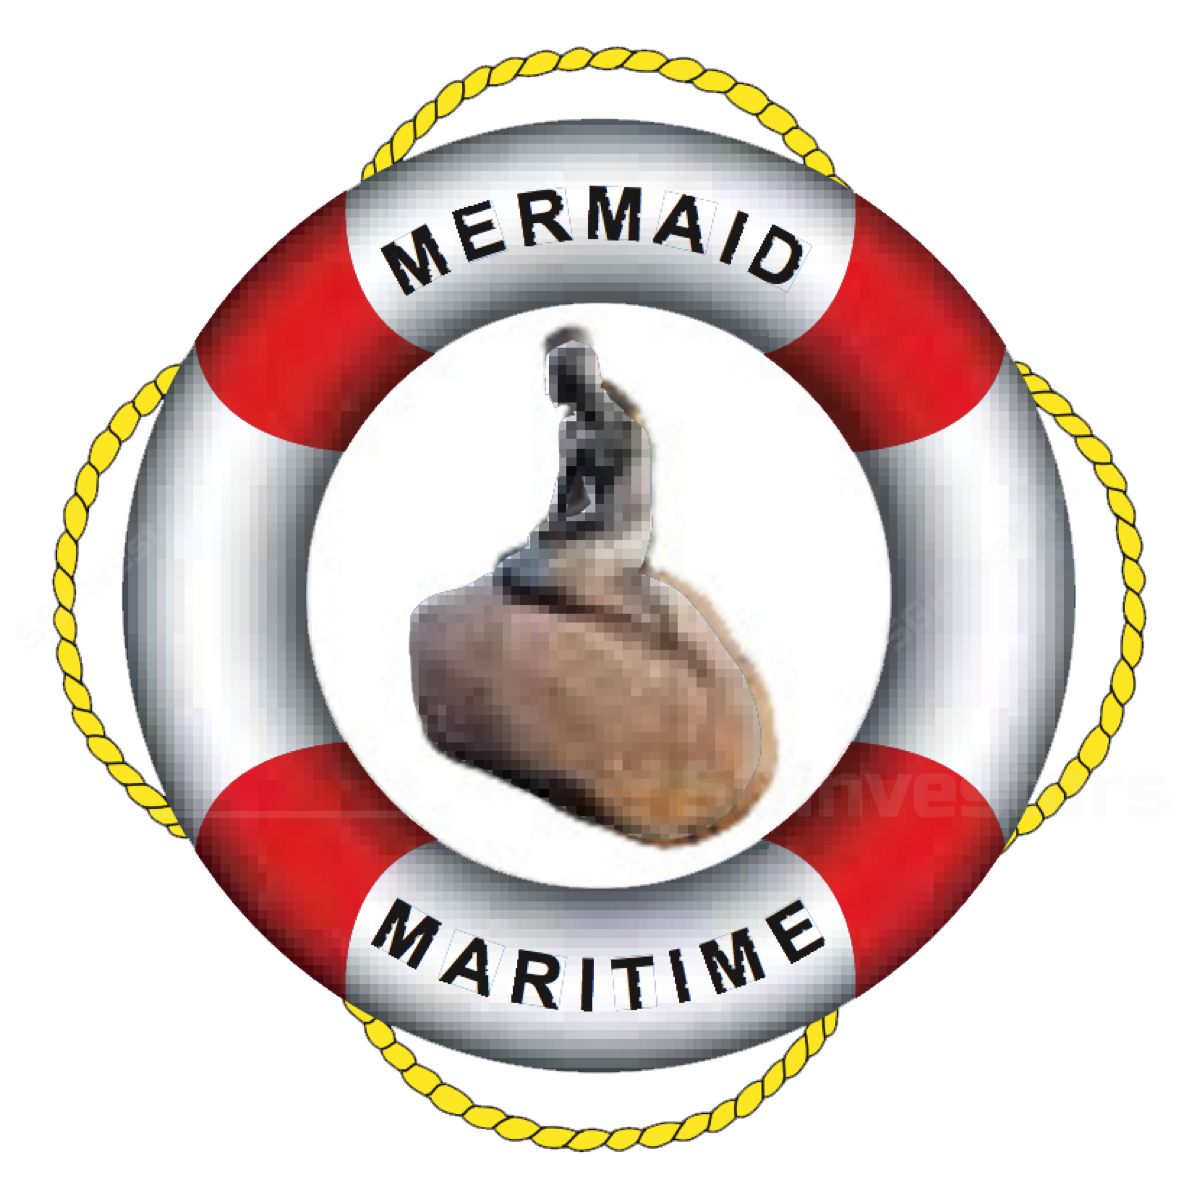 Mermaid Maritime - DBS Vickers 2018-05-17: No Reason To Get Excited